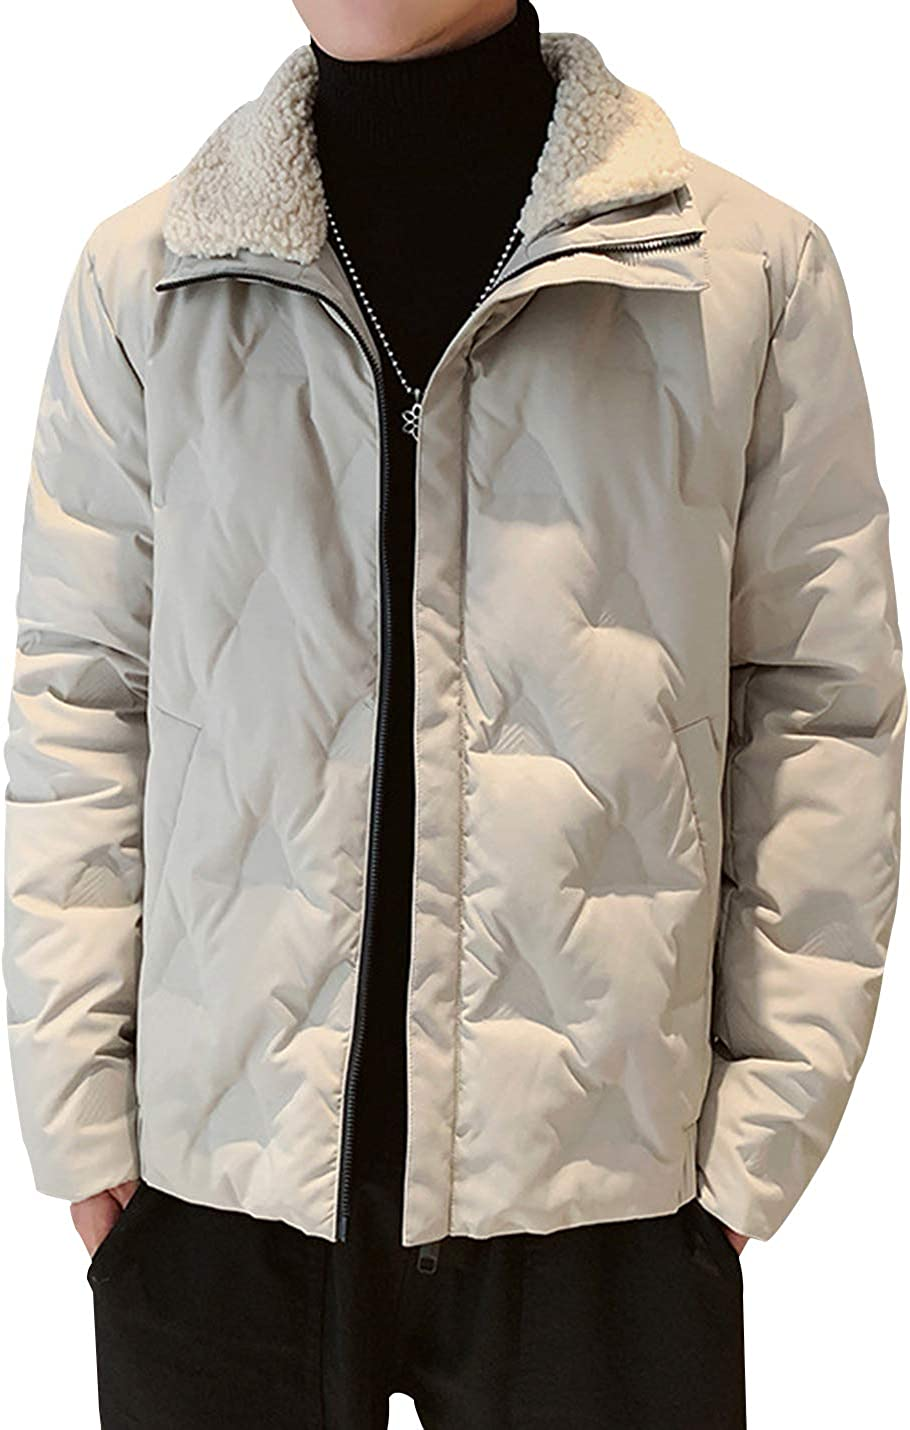 Gihuo Men's Thick Casual Padded Quilted Puffer Jacket Outerwear